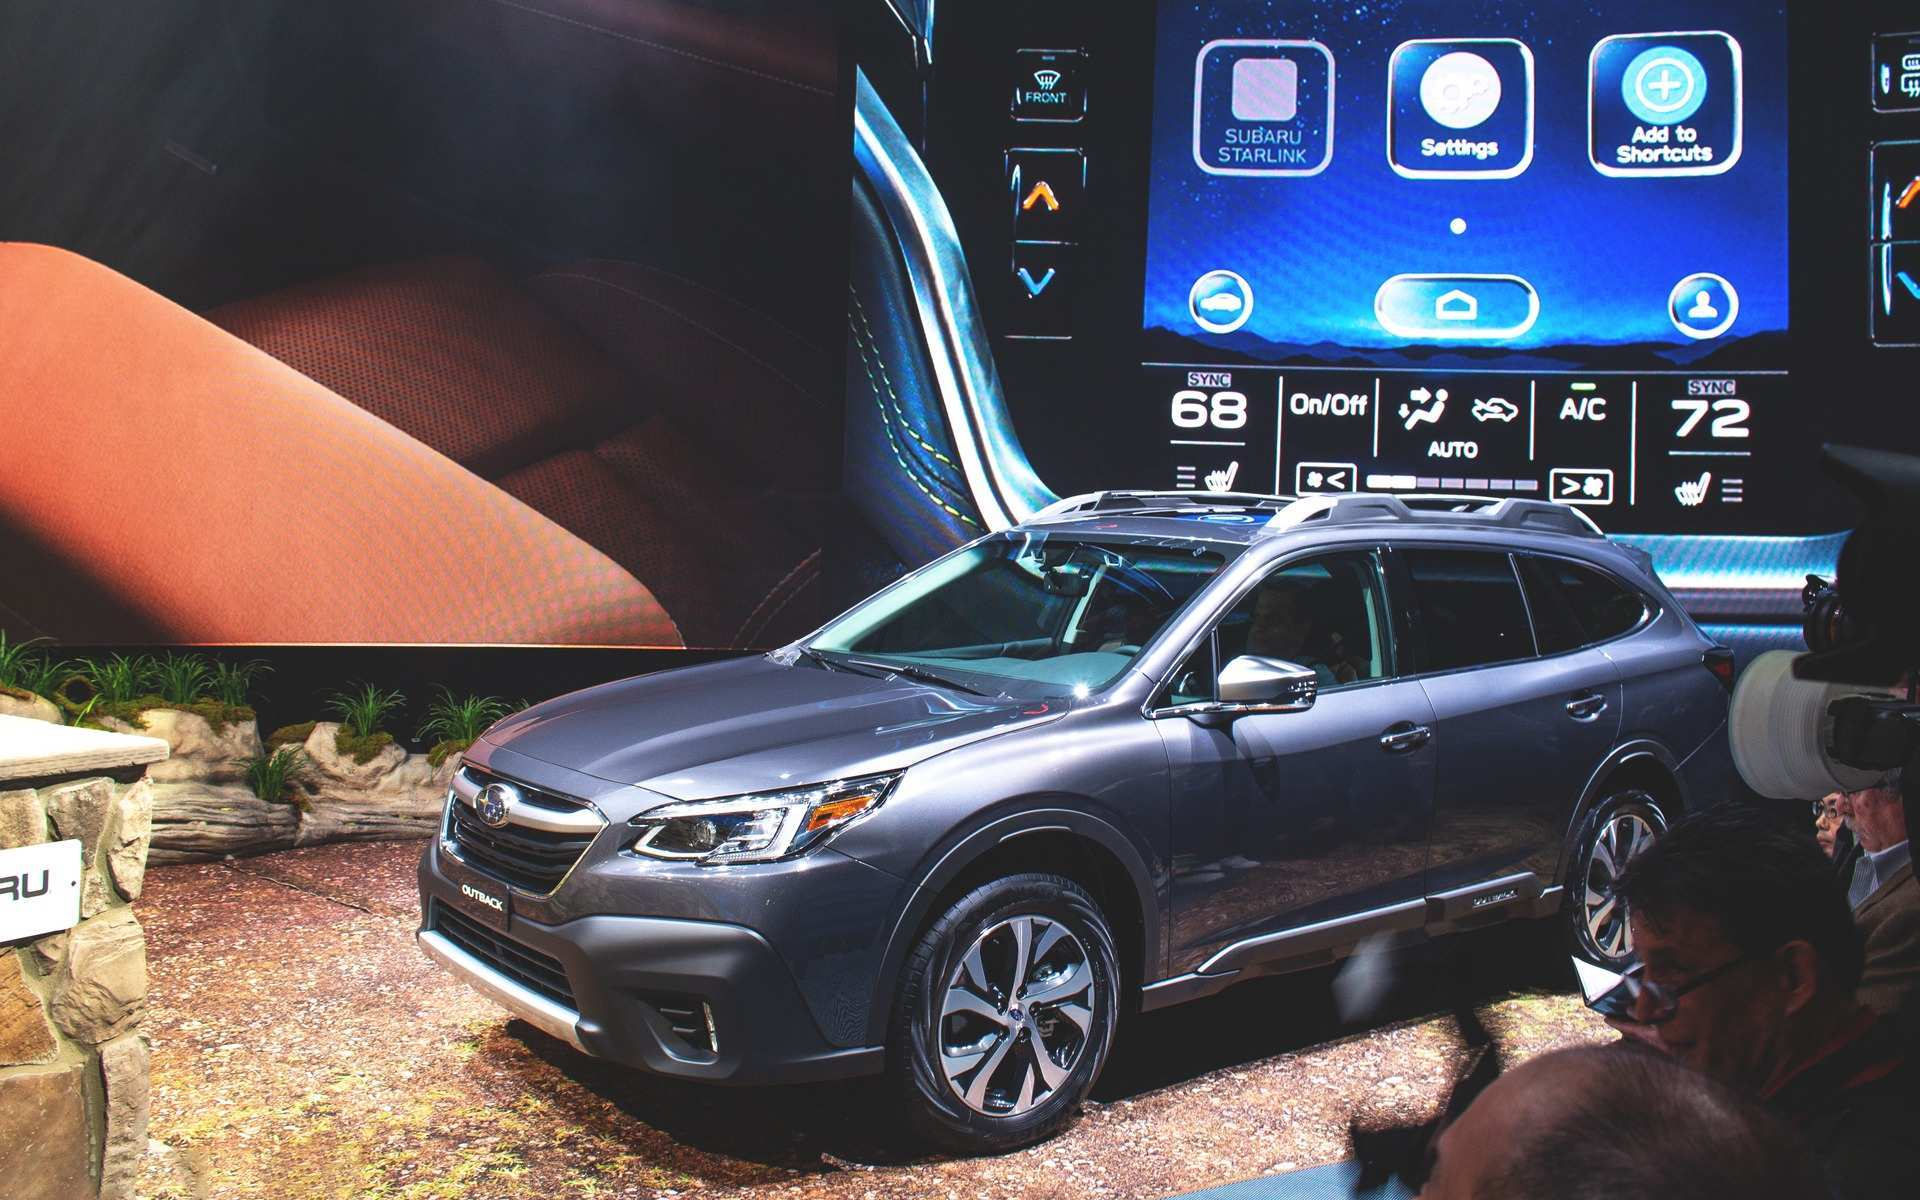 76 Great 2020 Subaru Outback Availability Review for 2020 Subaru Outback Availability